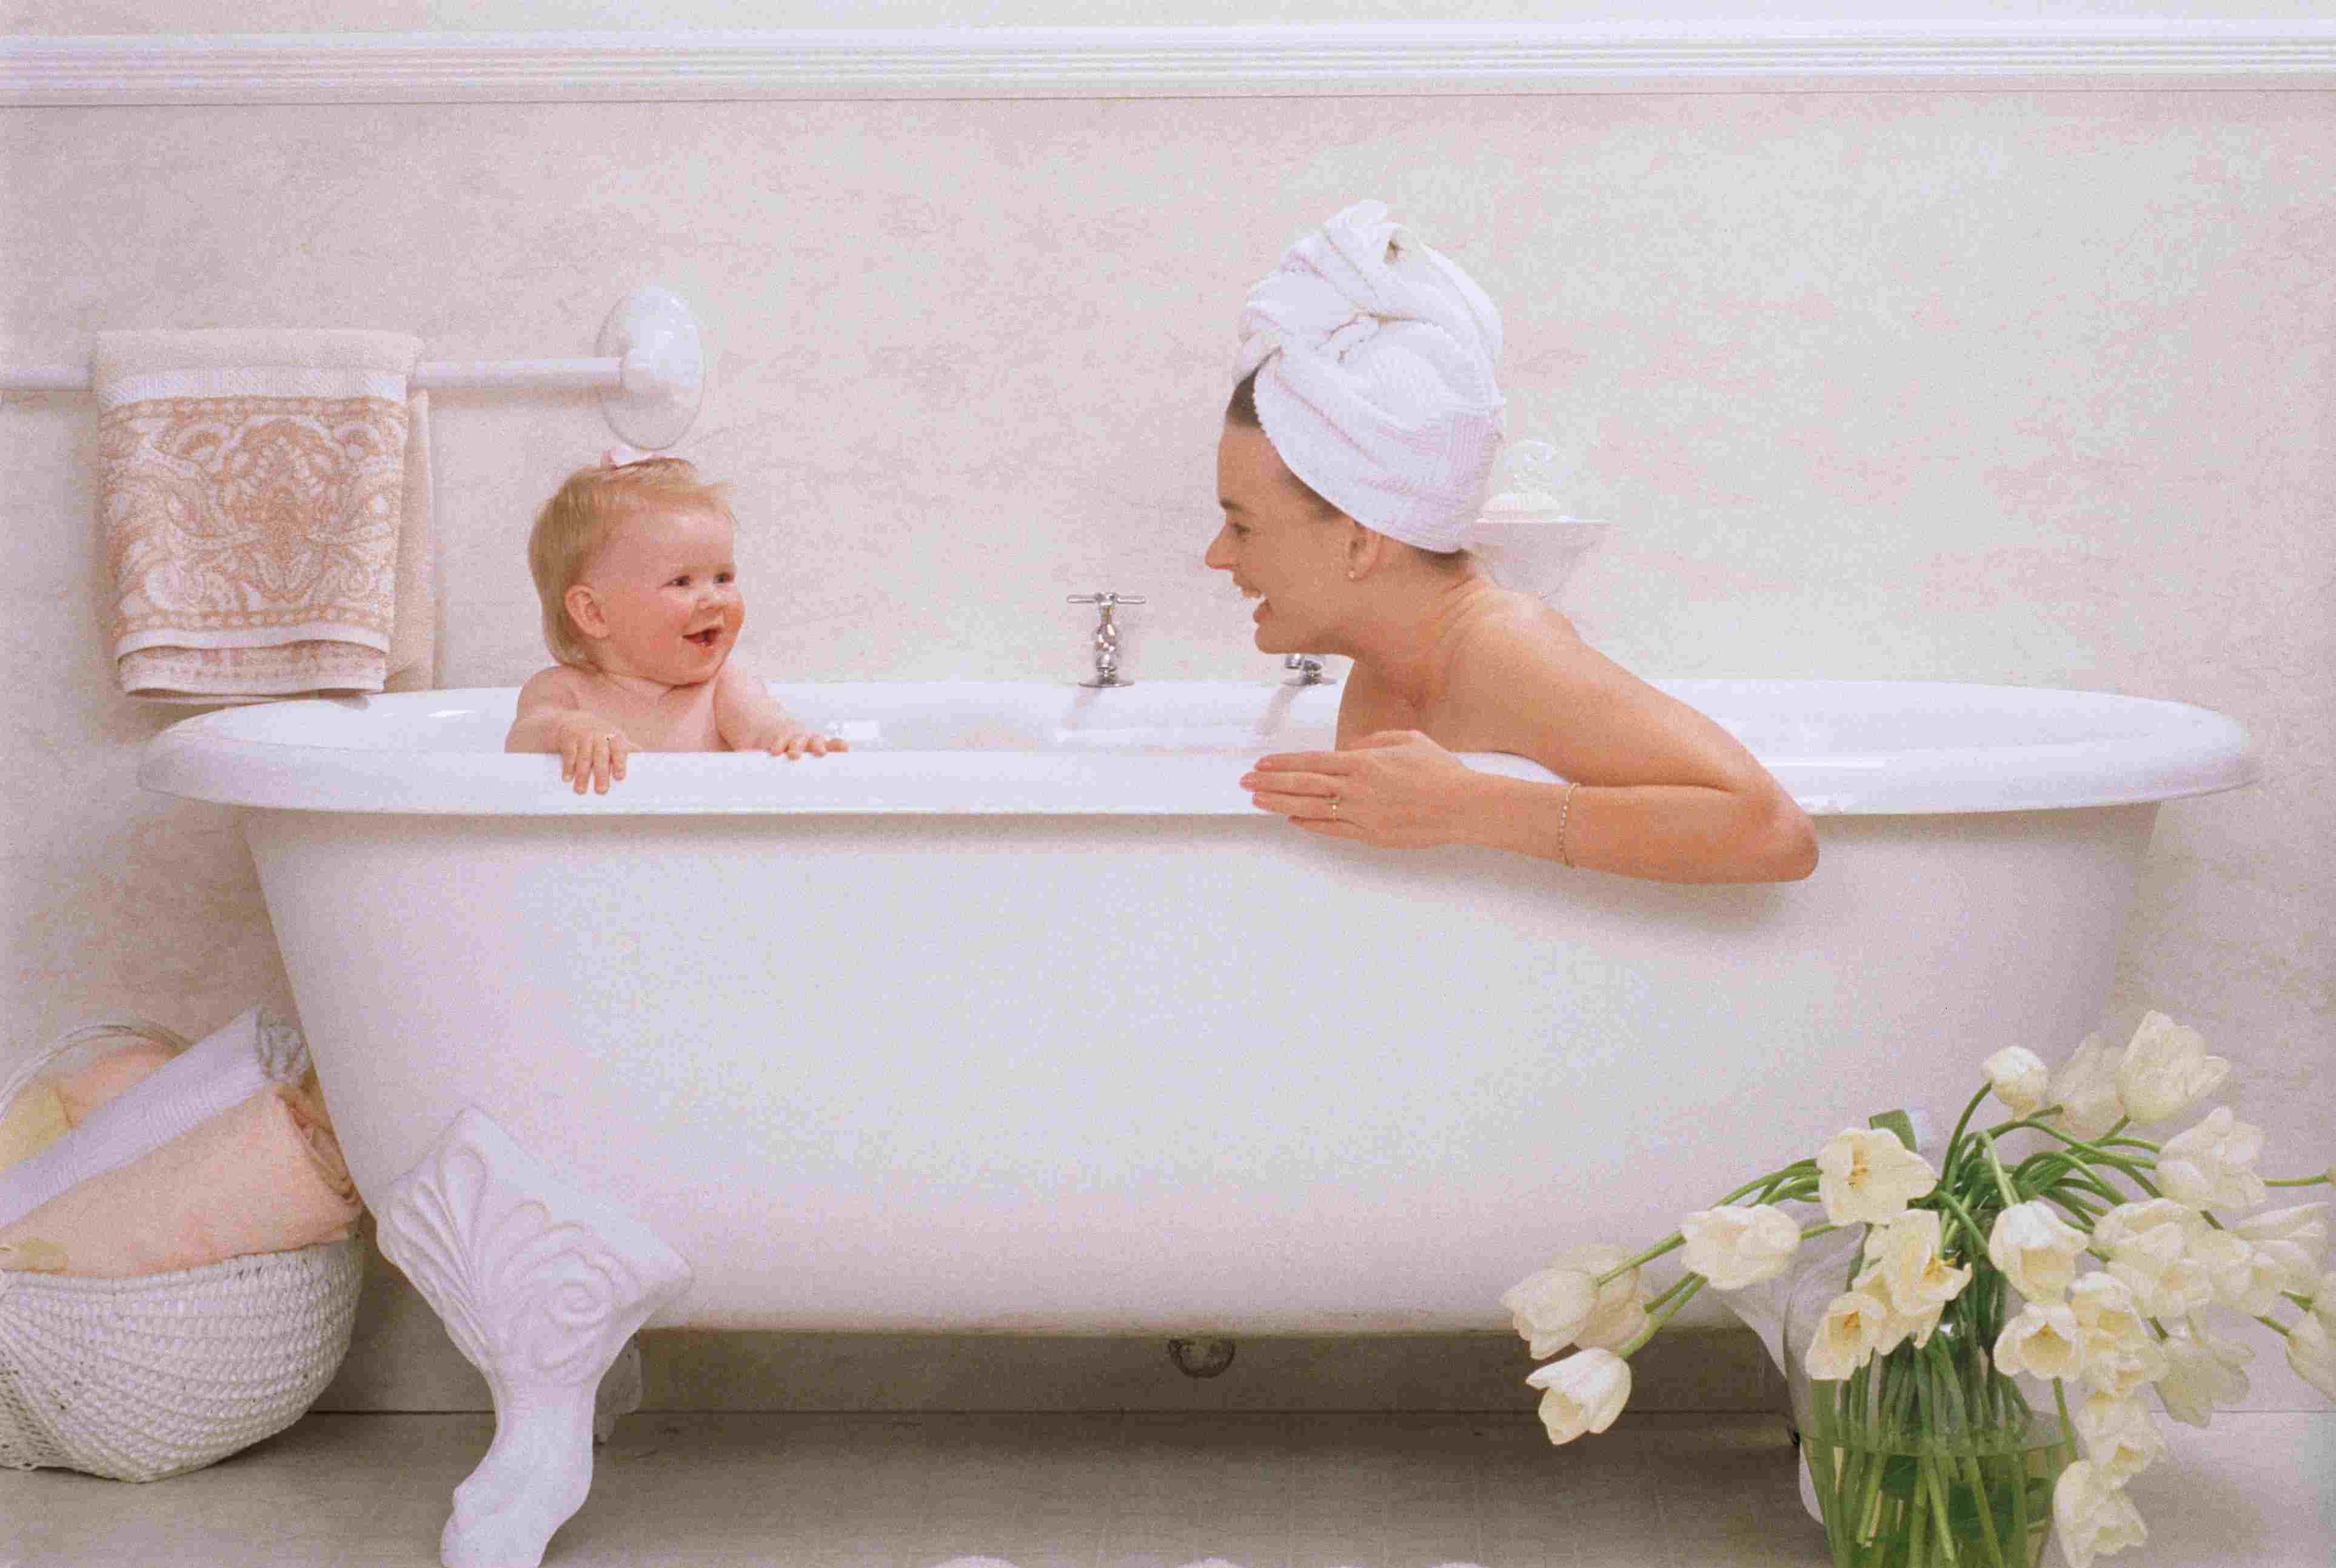 Mom and baby in a white claw-foot tub with a vase of white daffodils on the floor.